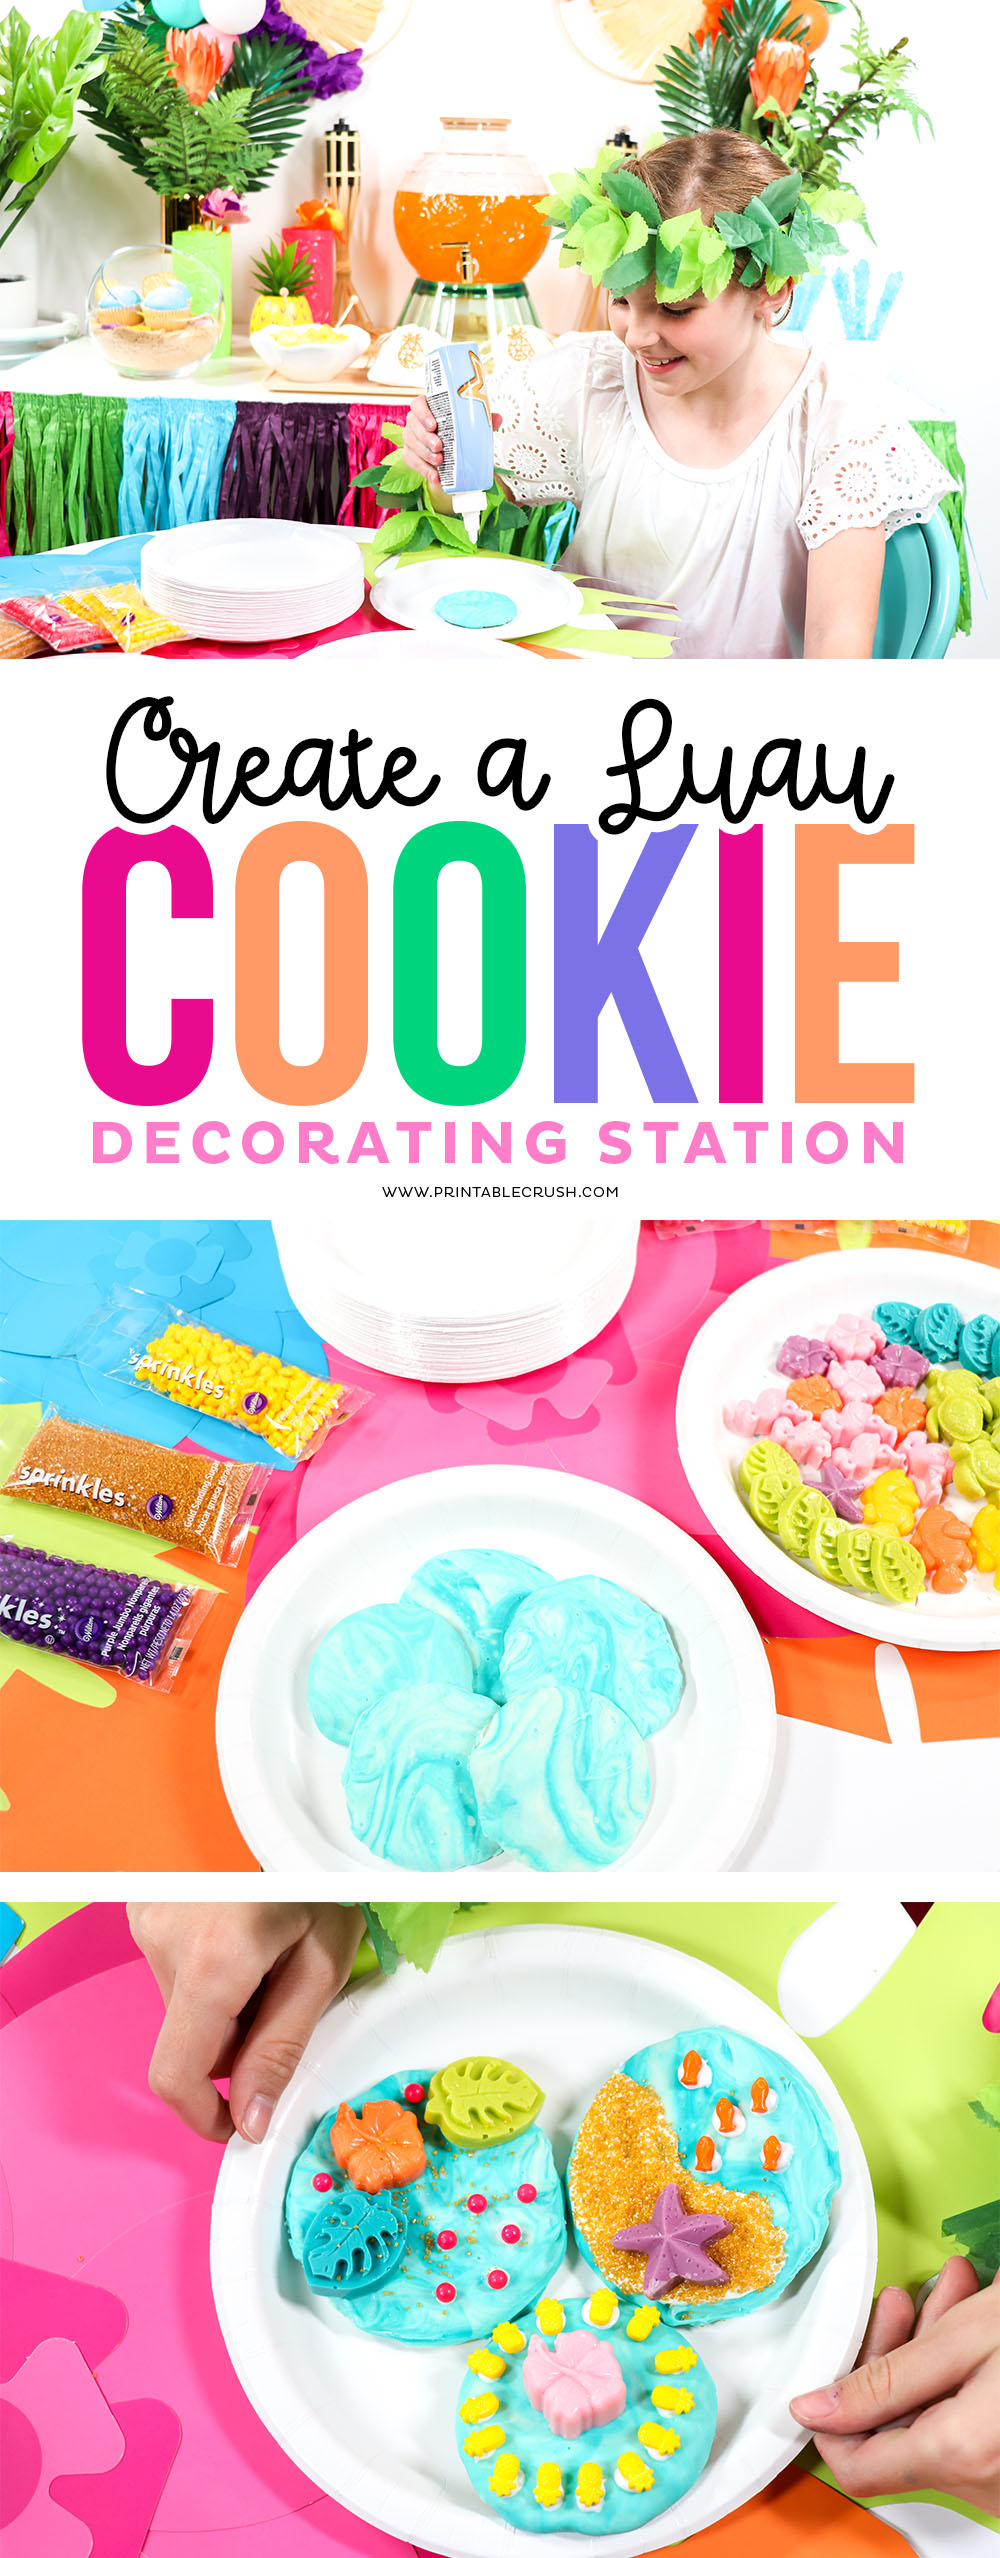 Add a fun Luau Cookie Decorating Station for your next summer party! Requires NO cookie decorating experience.